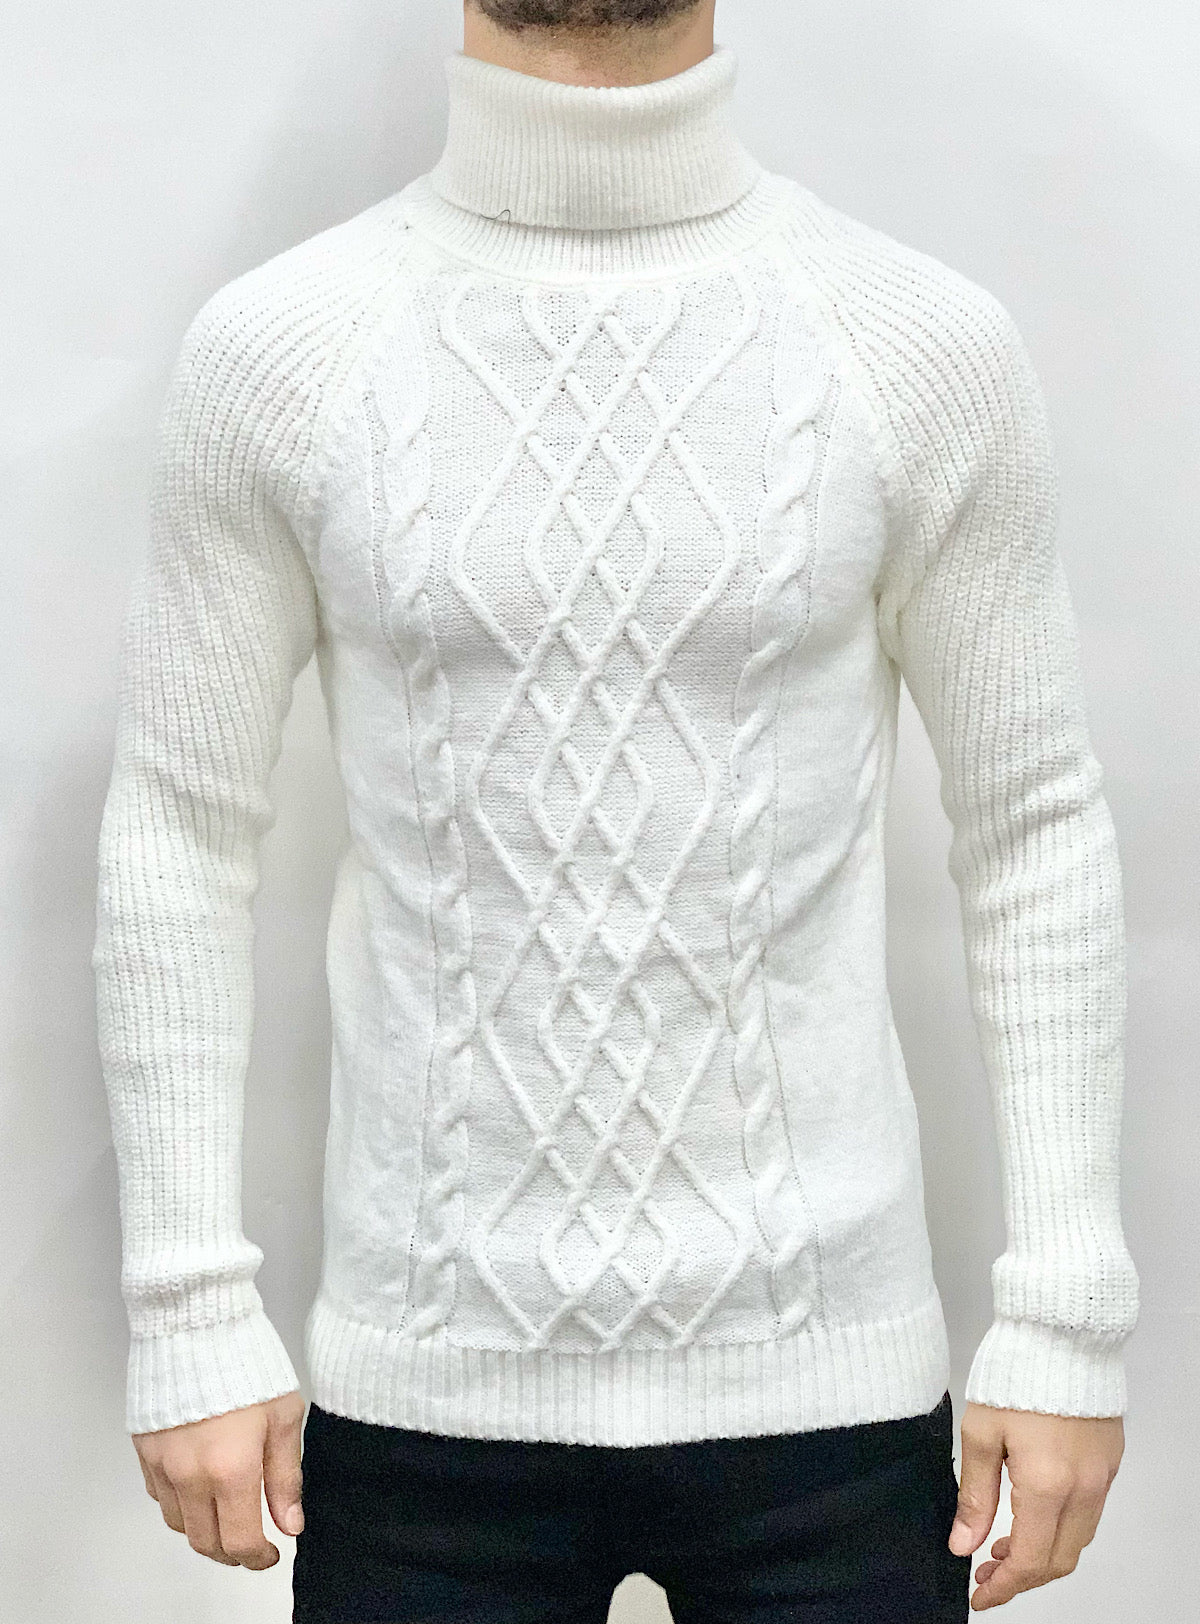 Buyer's Choice Sweater - Turtleneck Knit - Off White - T3720